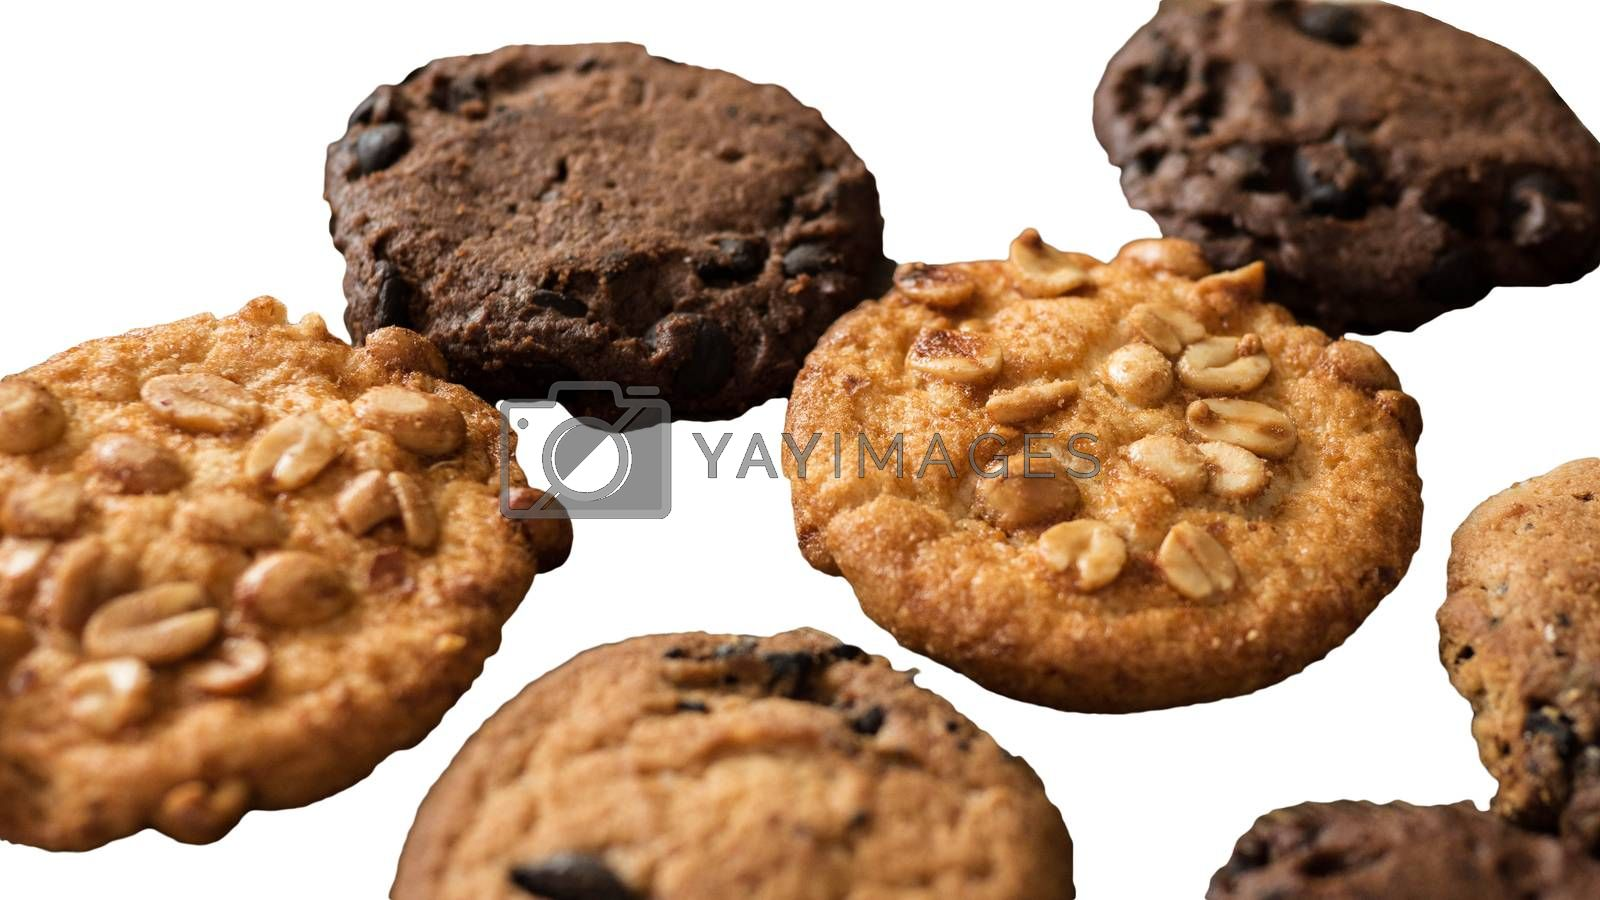 Royalty free image of Peanut cookie isolated on white,close-up. by Andriii_Klapkoo